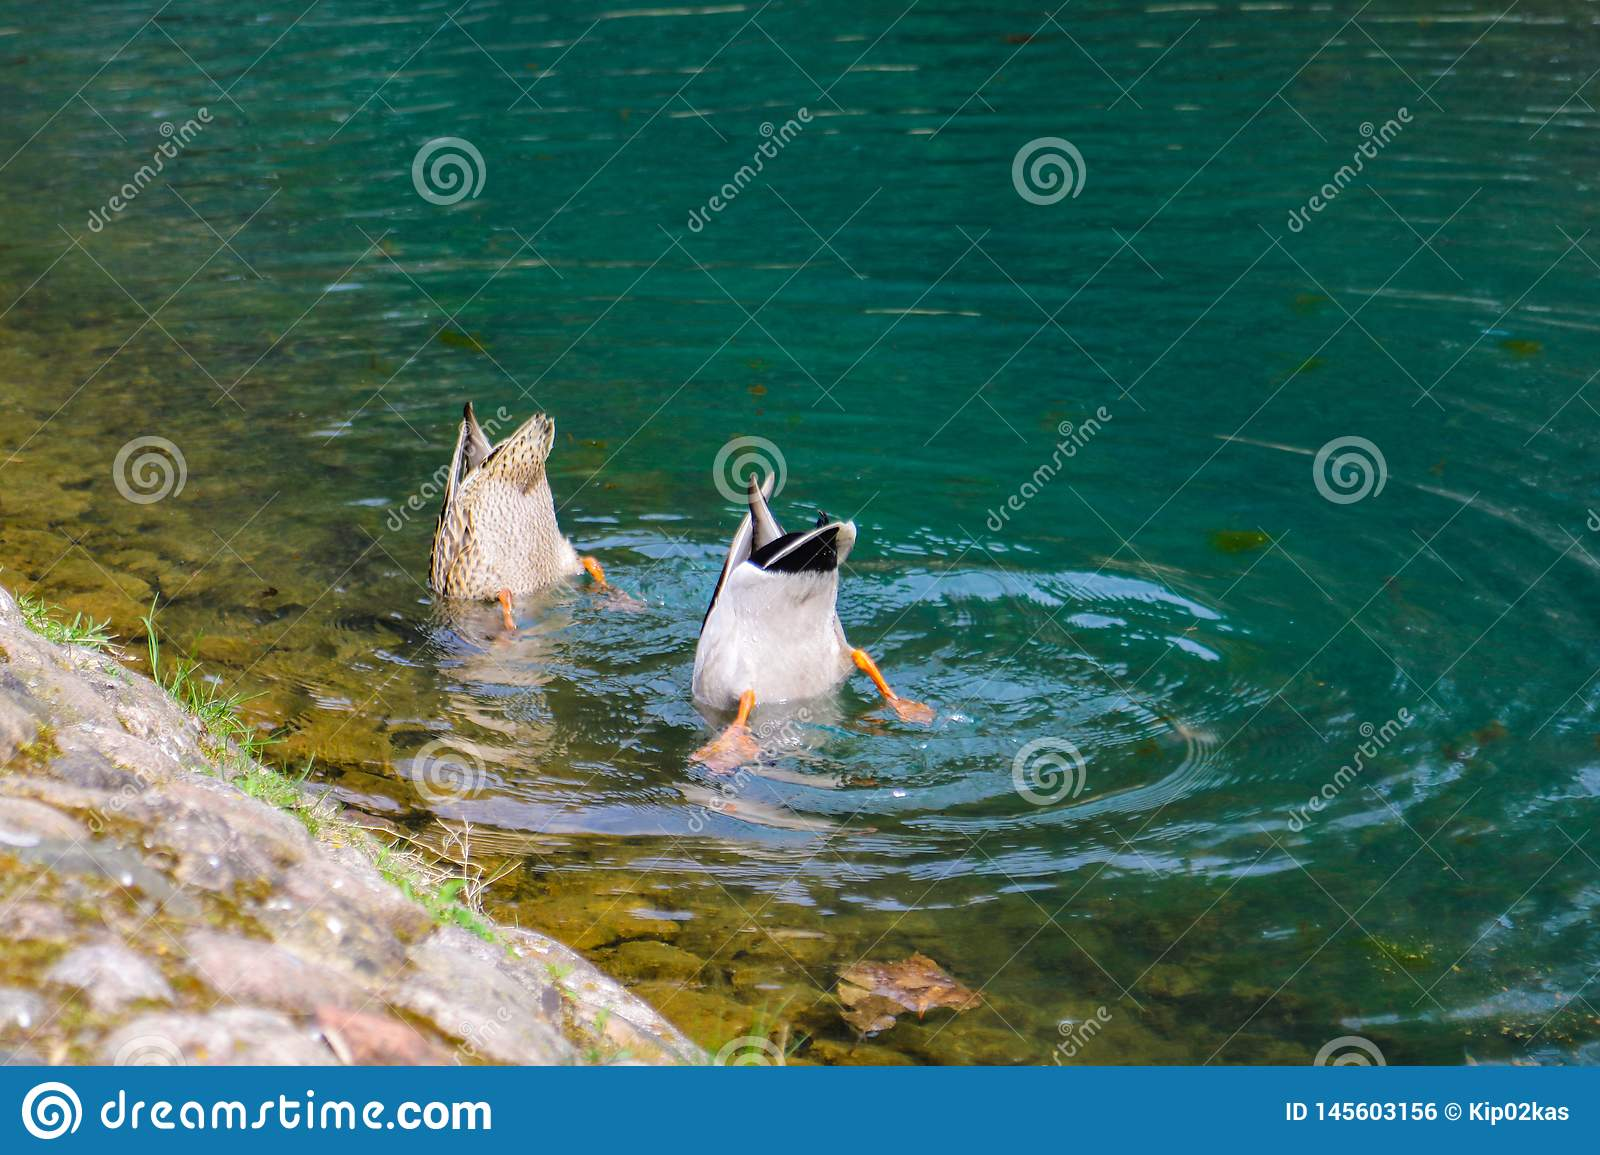 Two ducks dive into the water in search of food